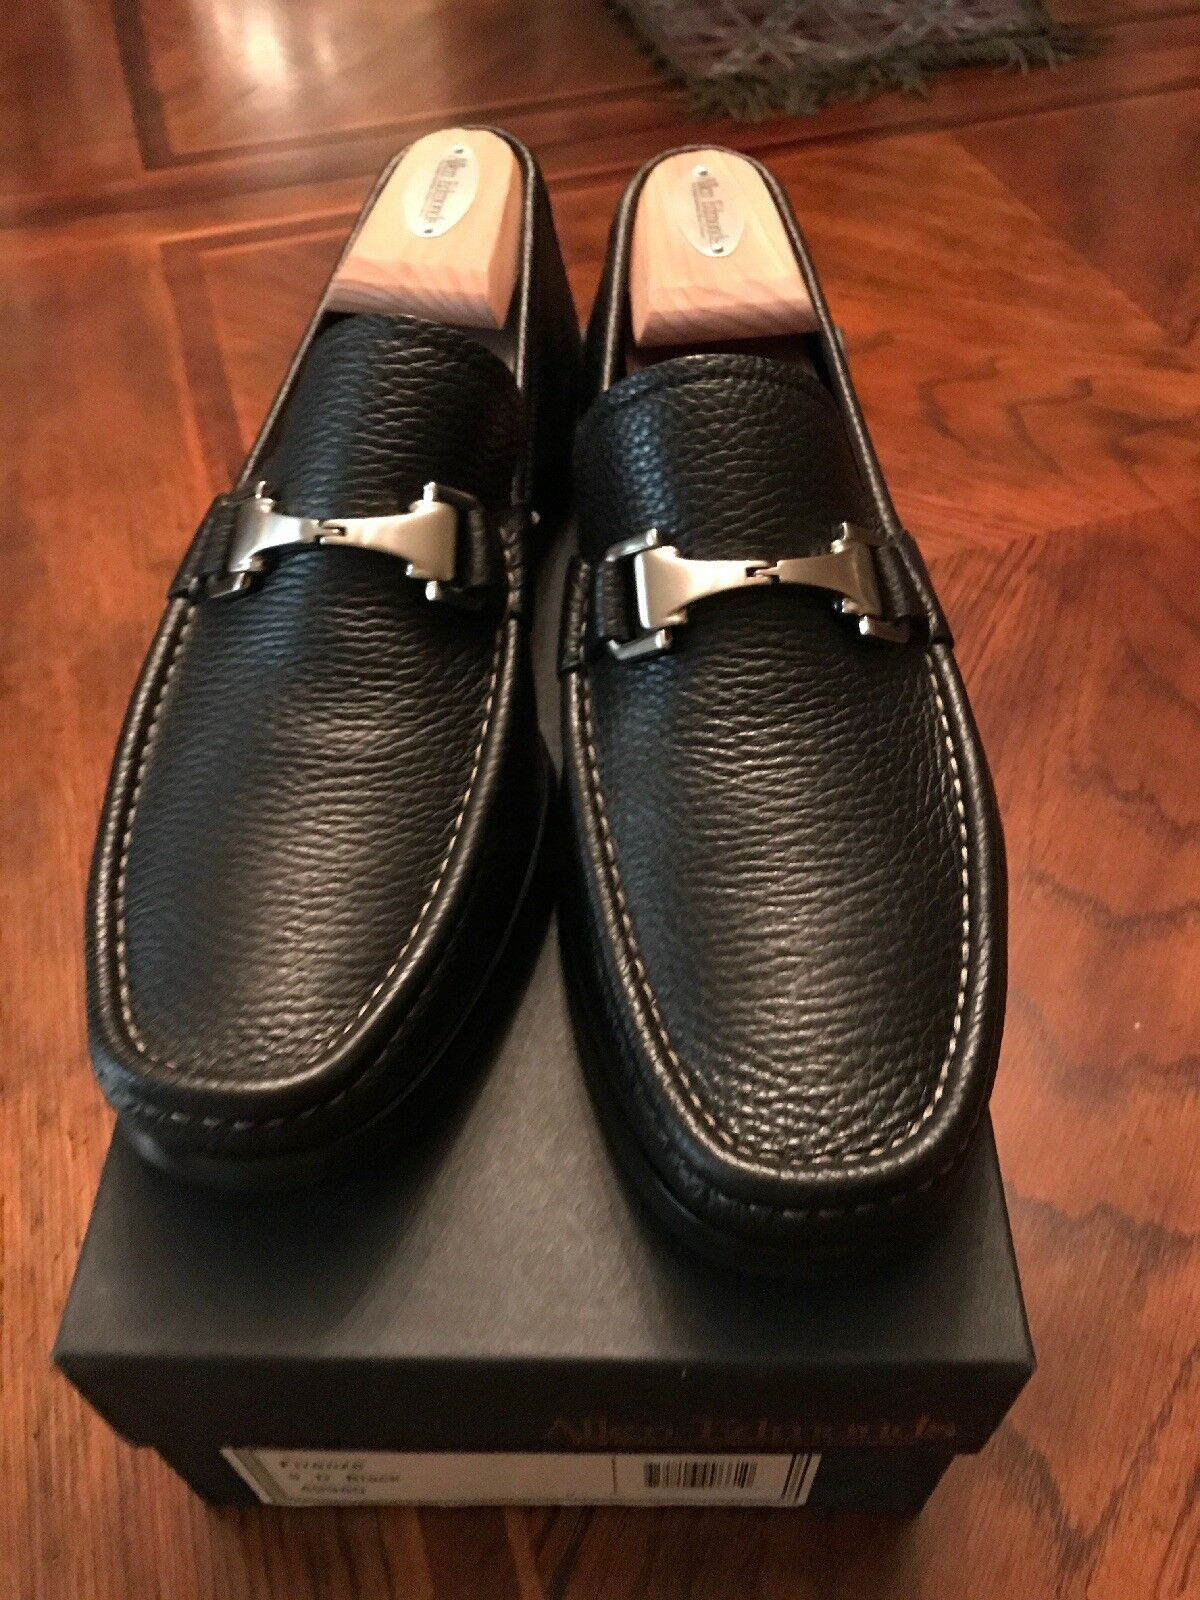 PRACTICALLY NEW  Allen Edmonds Firenze Dress scarpe Dimensione 9 In nero